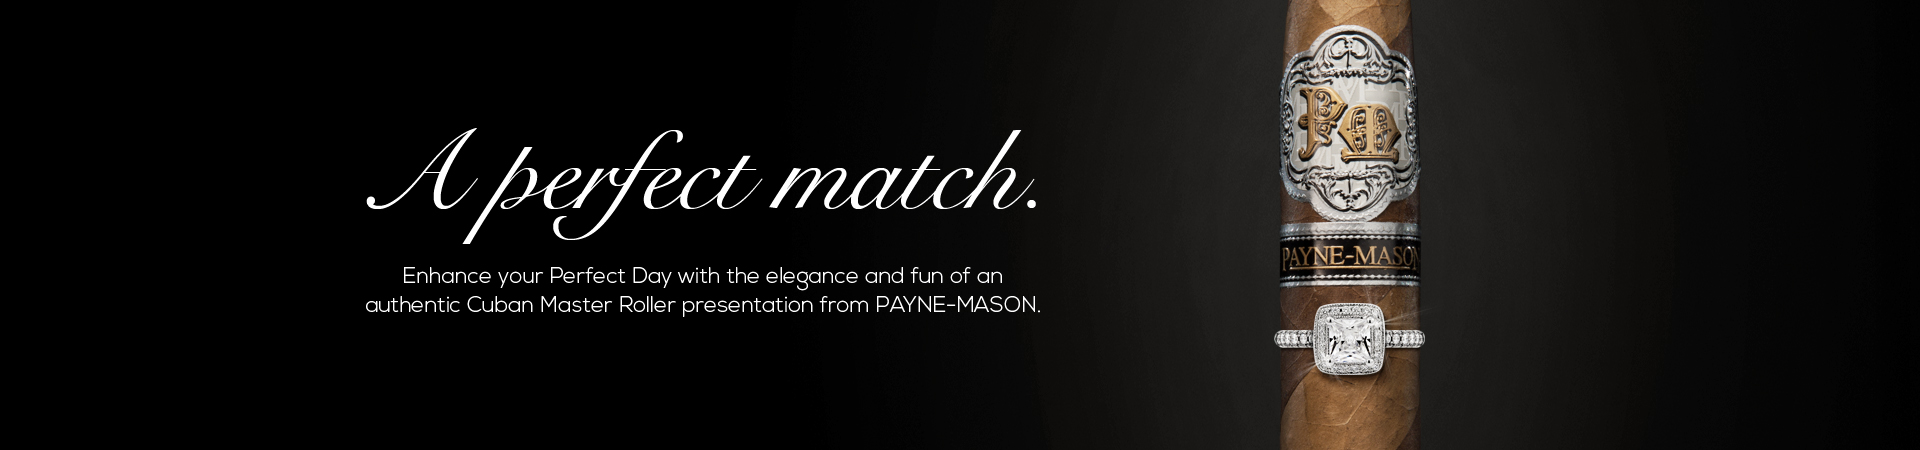 PM-Wedding-Website-Main-Banner